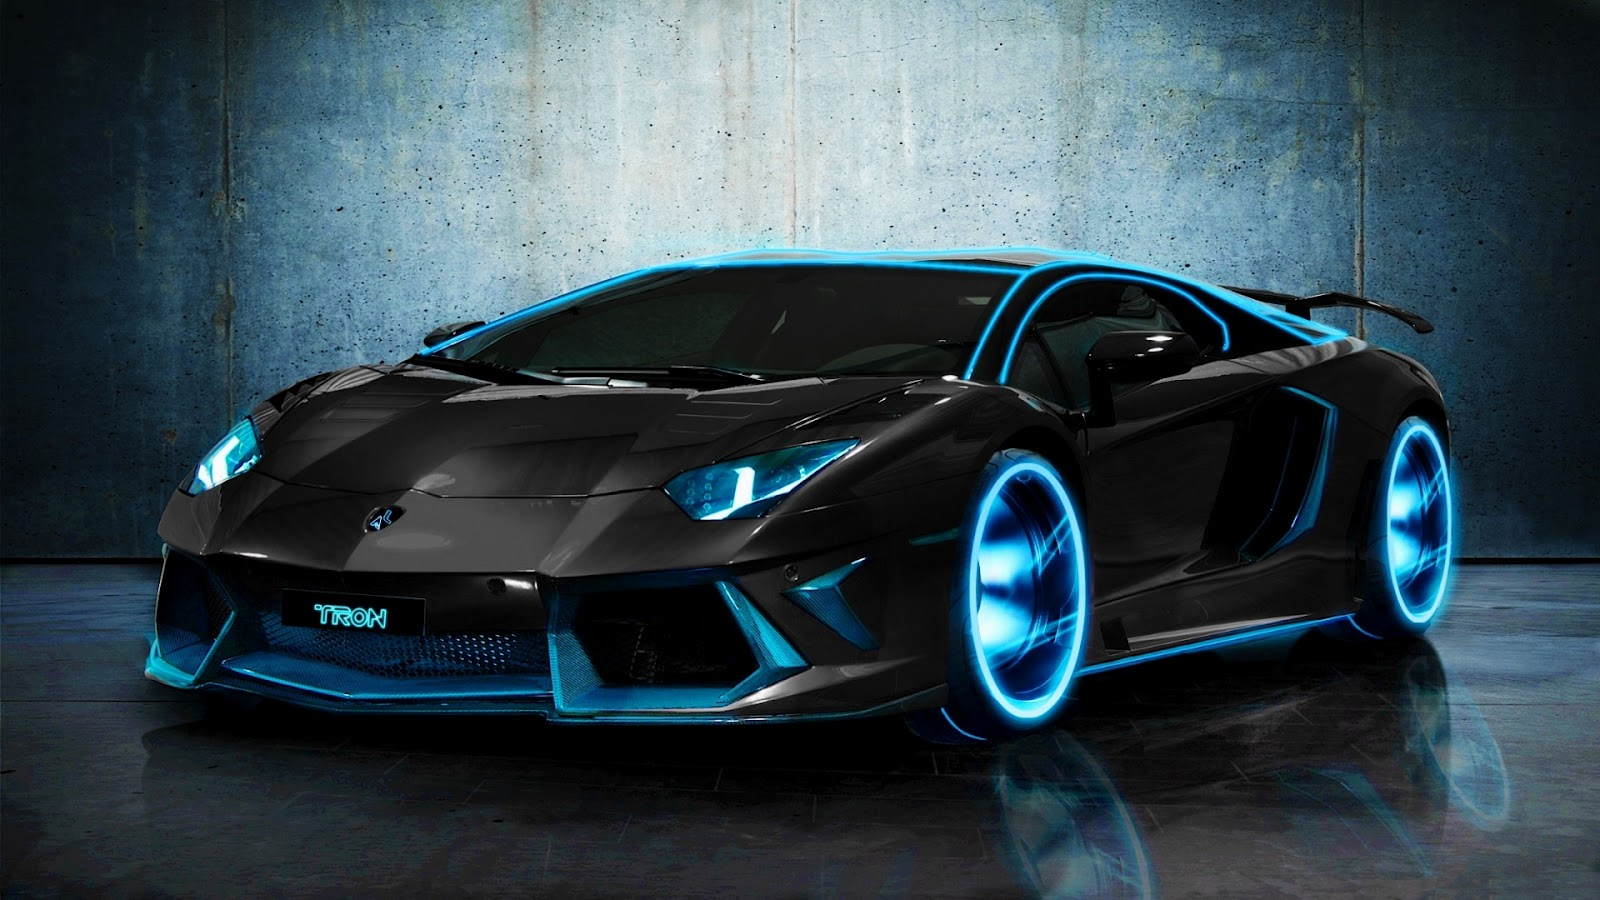 3d Car Wallpapers Free Download Wallpapersafari